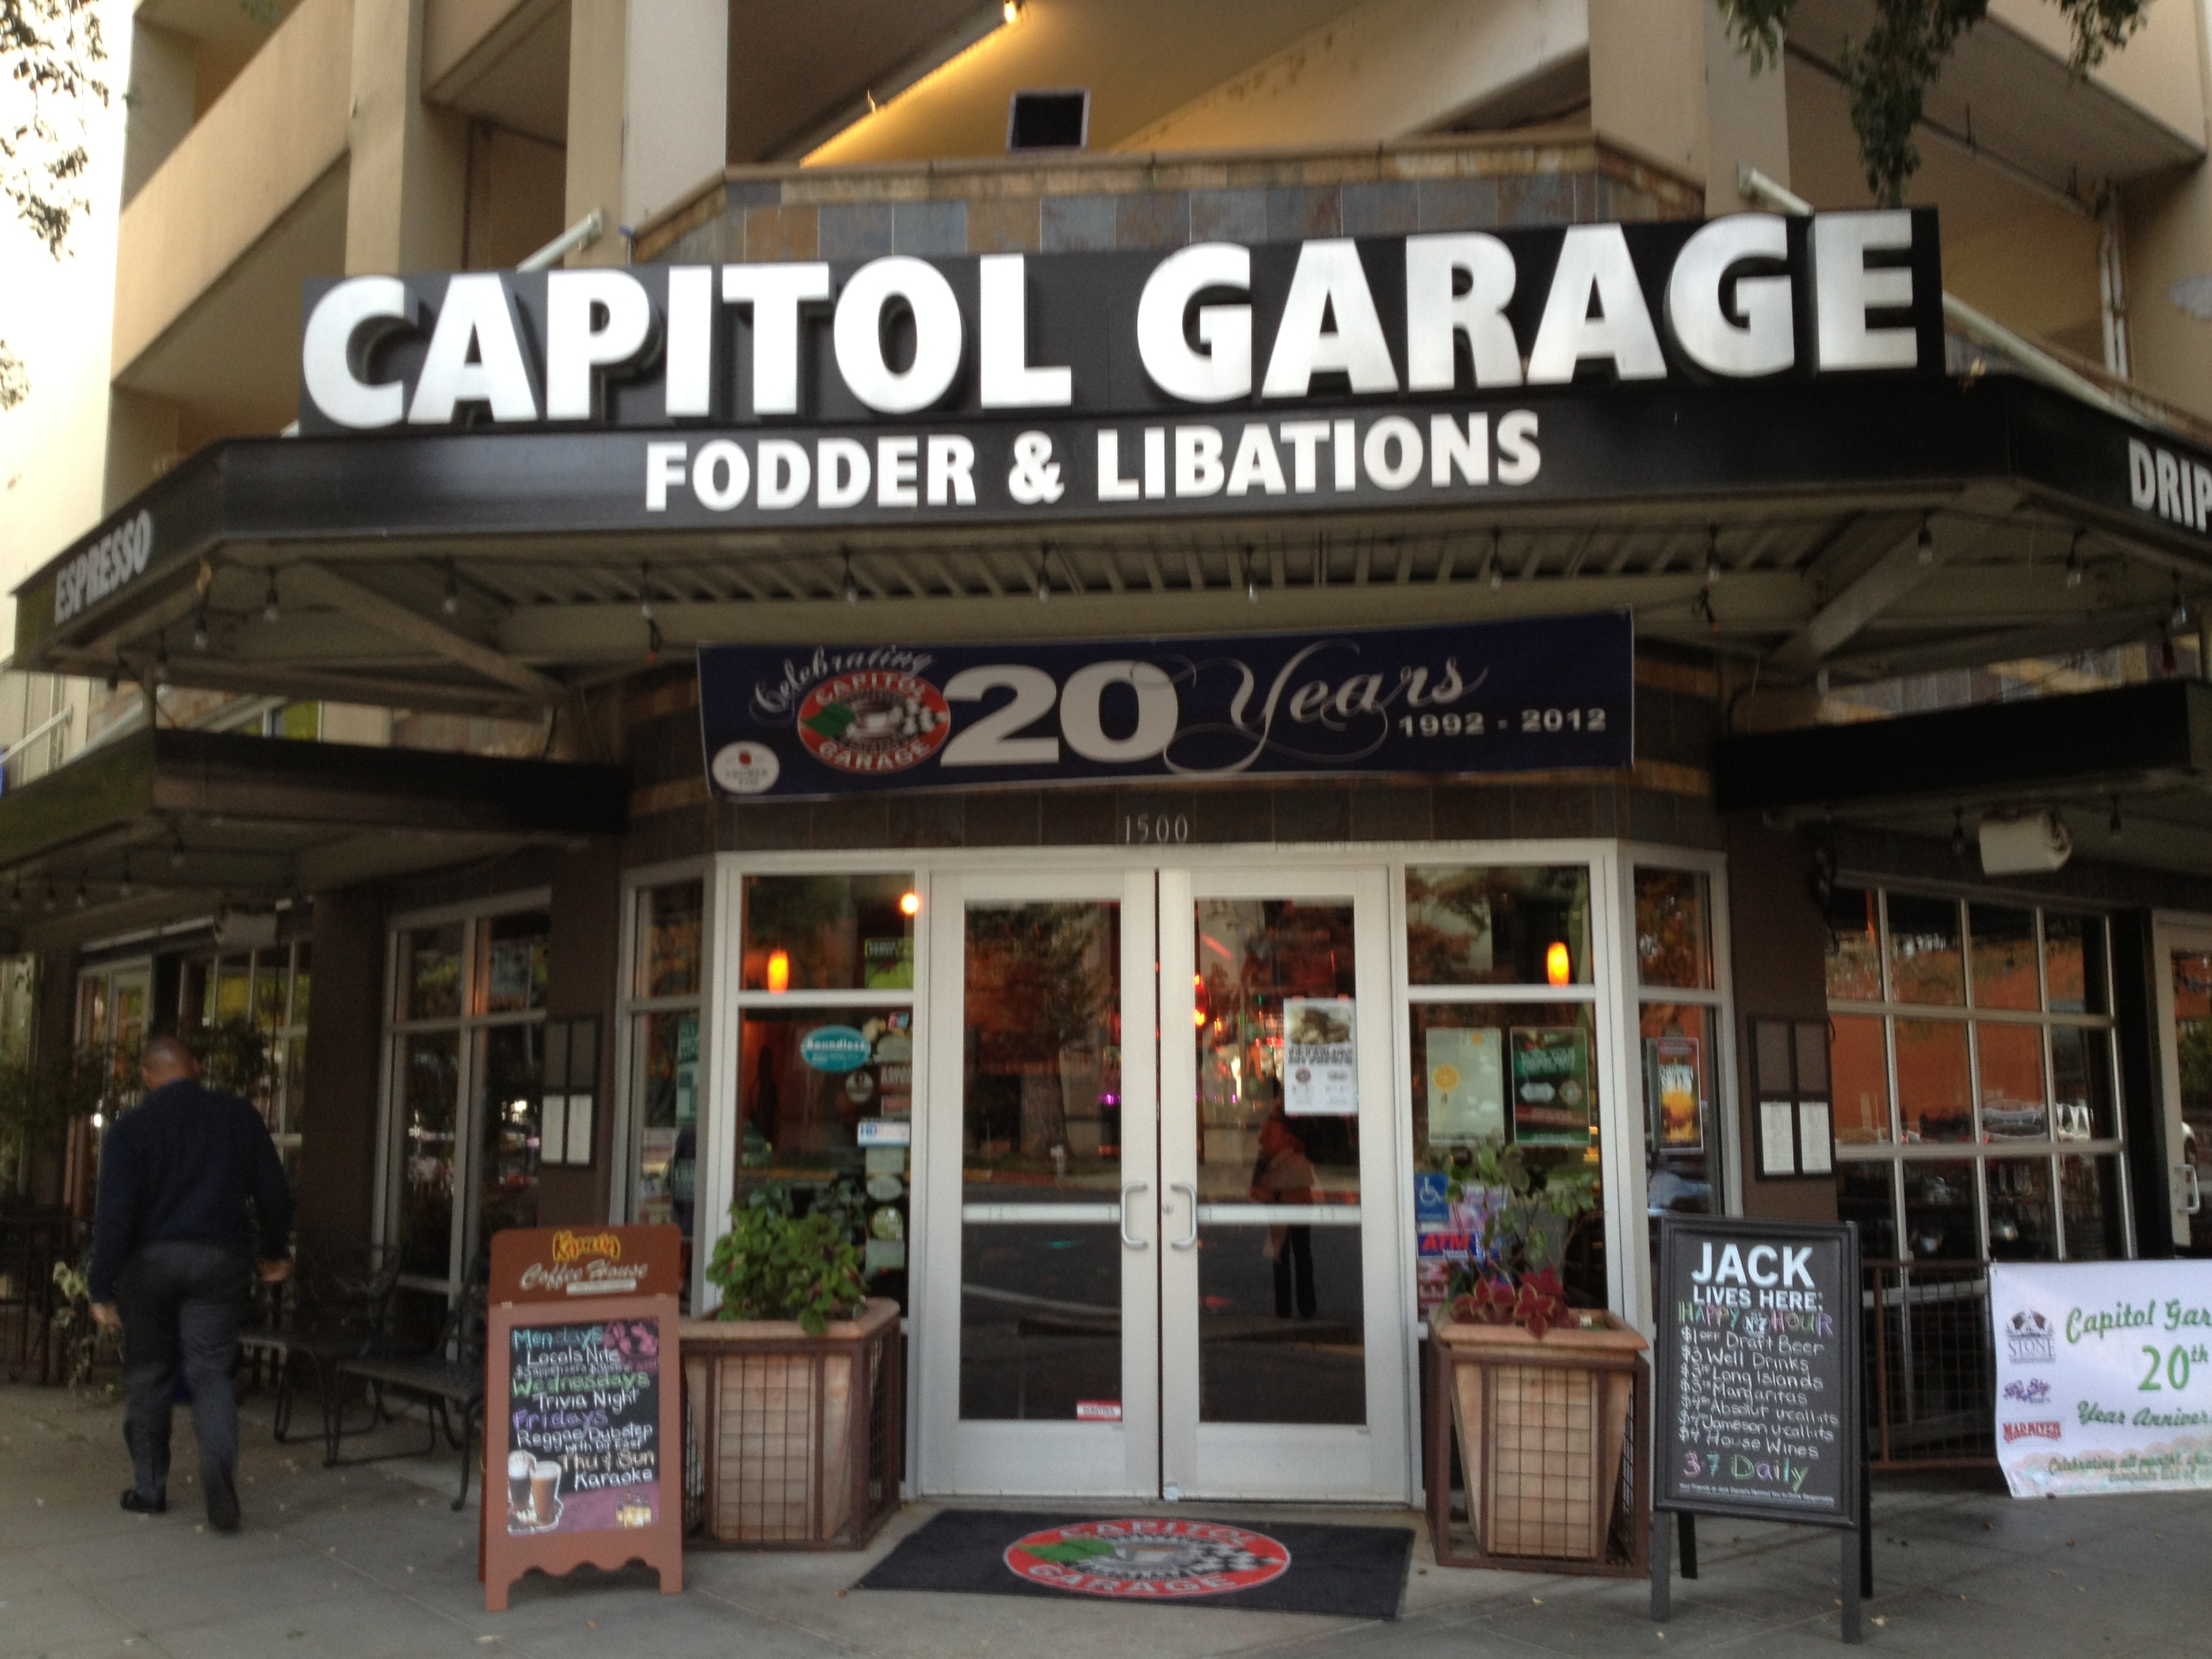 Capitol Garage – tinlizzieridesagain on hiram johnson high school sacramento, tapa the world sacramento, frank fats sacramento, cesar chavez plaza sacramento, old soul co sacramento, on the y sacramento, 33rd street bistro sacramento, suzie burger sacramento, press club sacramento, shabu japanese fondue sacramento, the park sacramento, zokku sacramento, parlare euro lounge sacramento, shady lady saloon sacramento, biba restaurant sacramento, the porch sacramento, tower bridge bistro sacramento, clubhouse 56 sacramento, lucca sacramento, esquire grill sacramento,